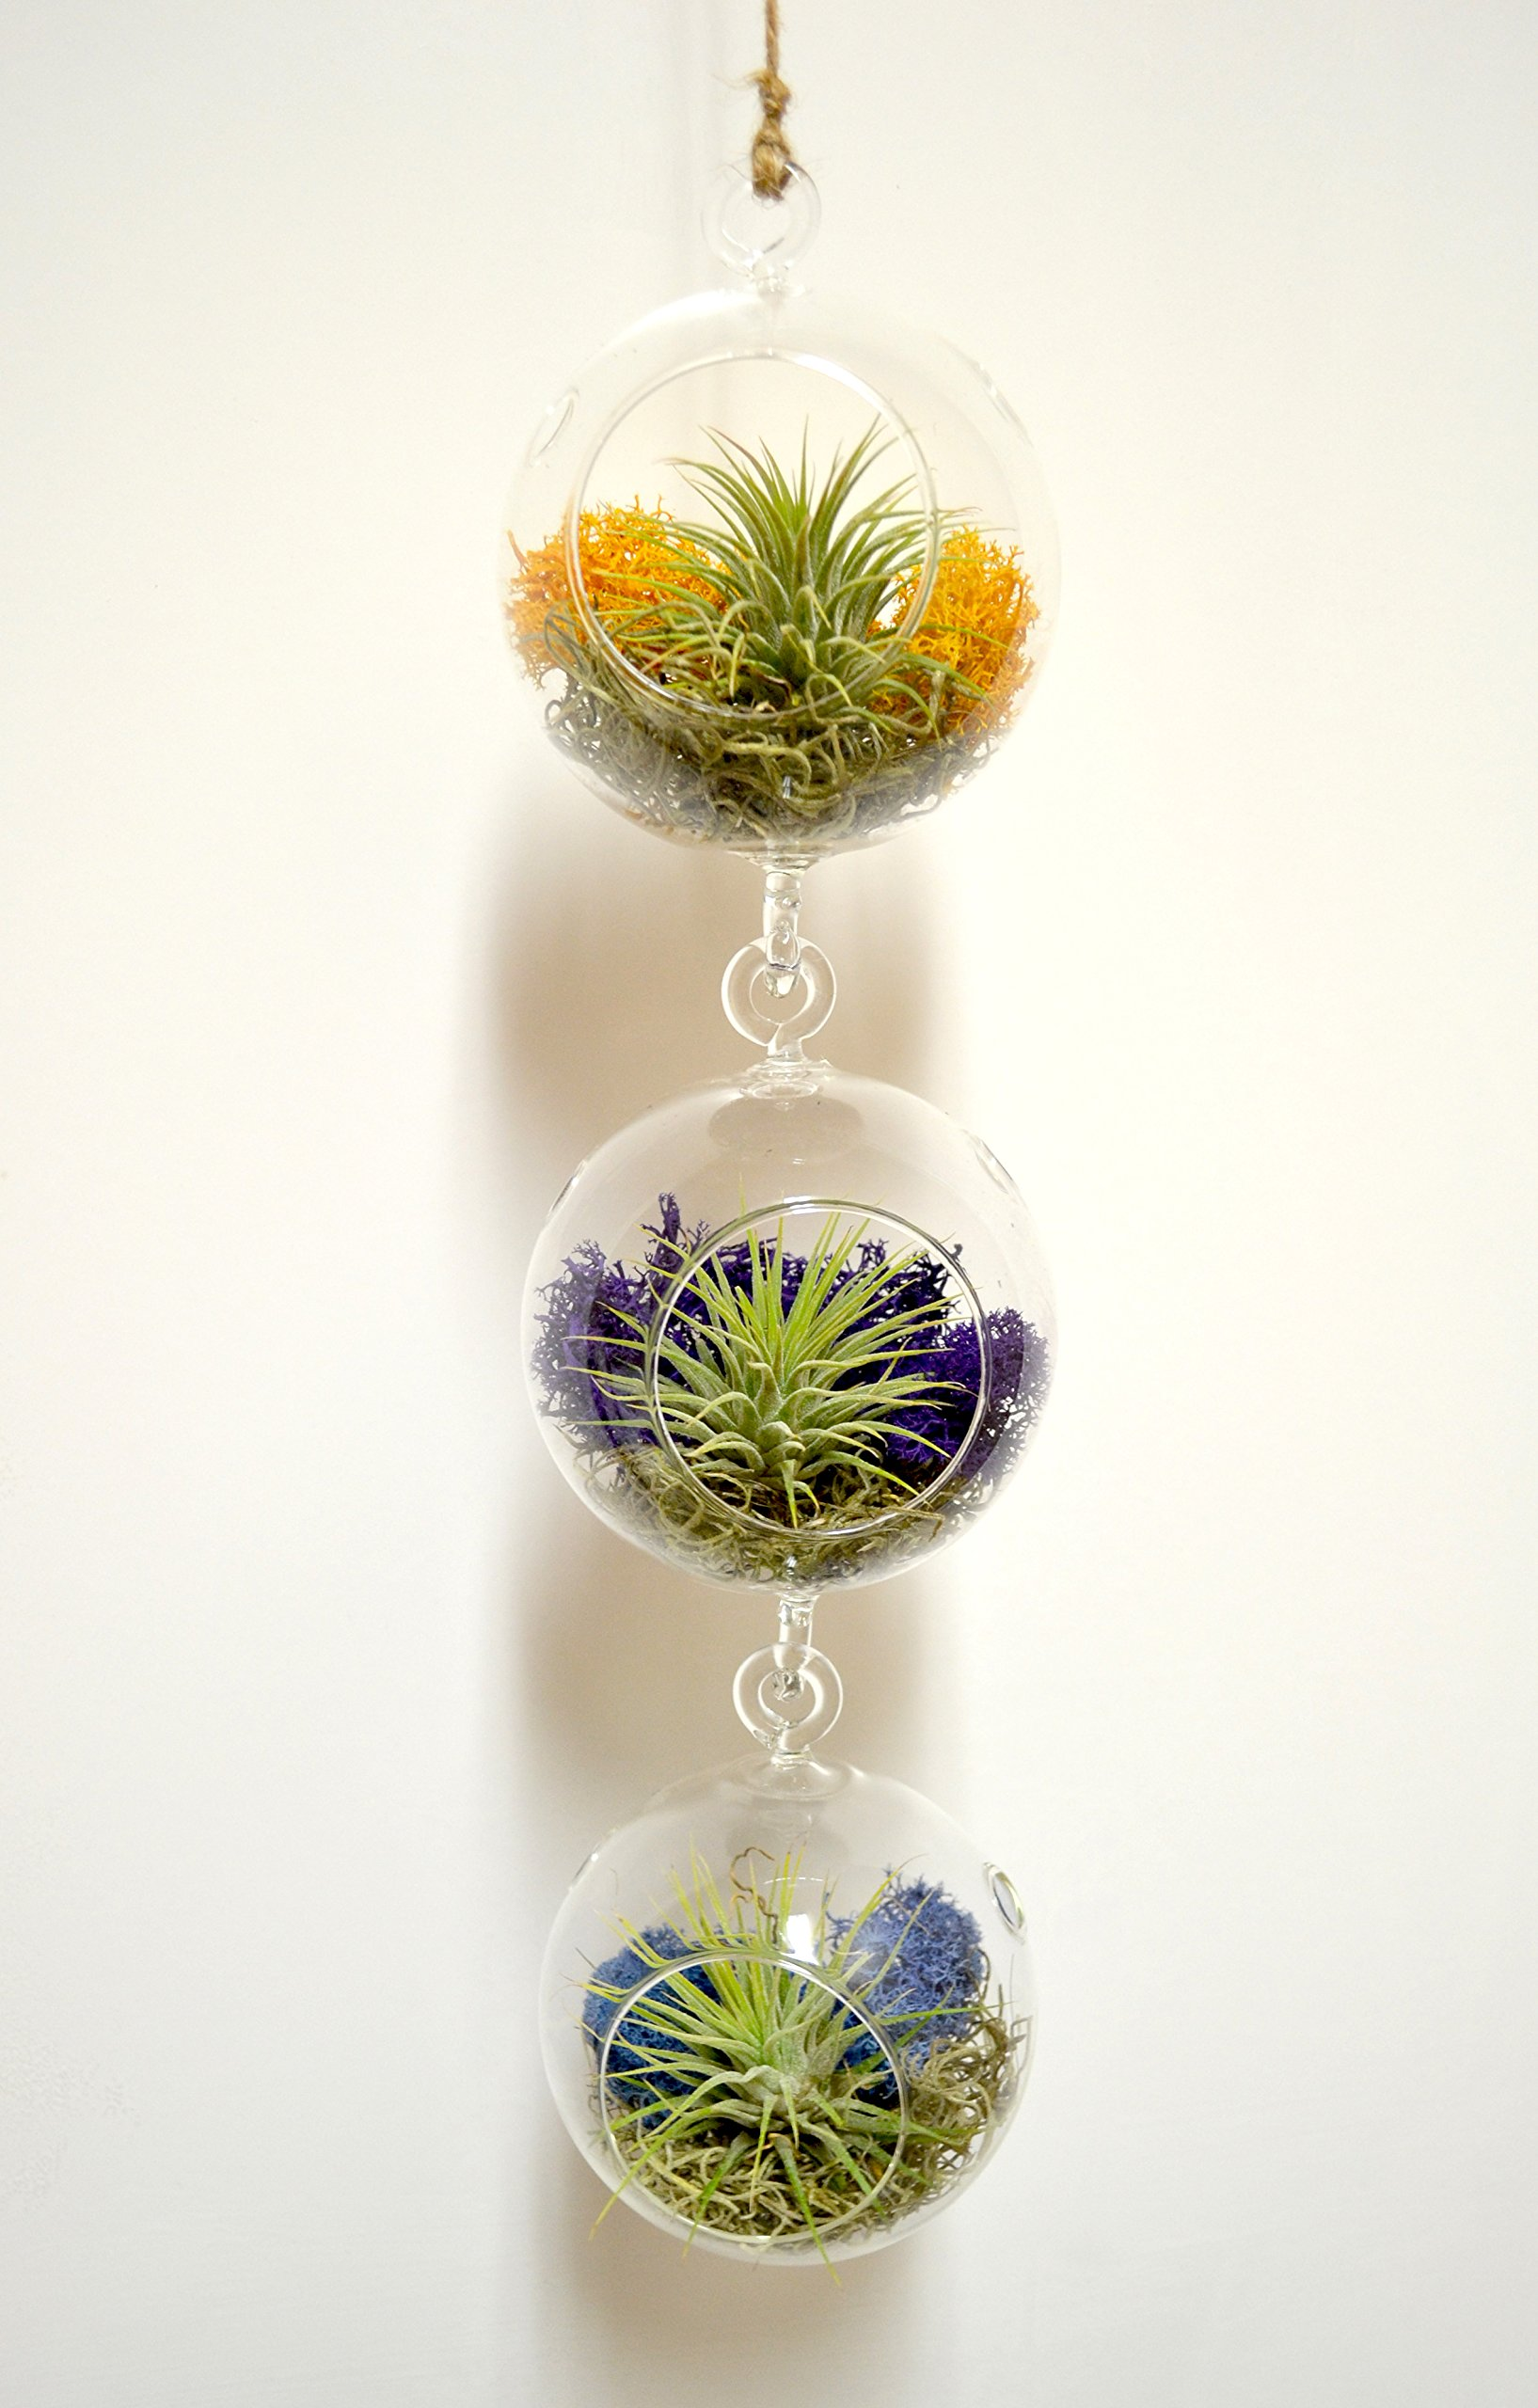 Pixie Glare Hanging Glass Terrariums - Set of Three, With Air Plants, Spanish Moss & Reindeer Moss (Carnival)